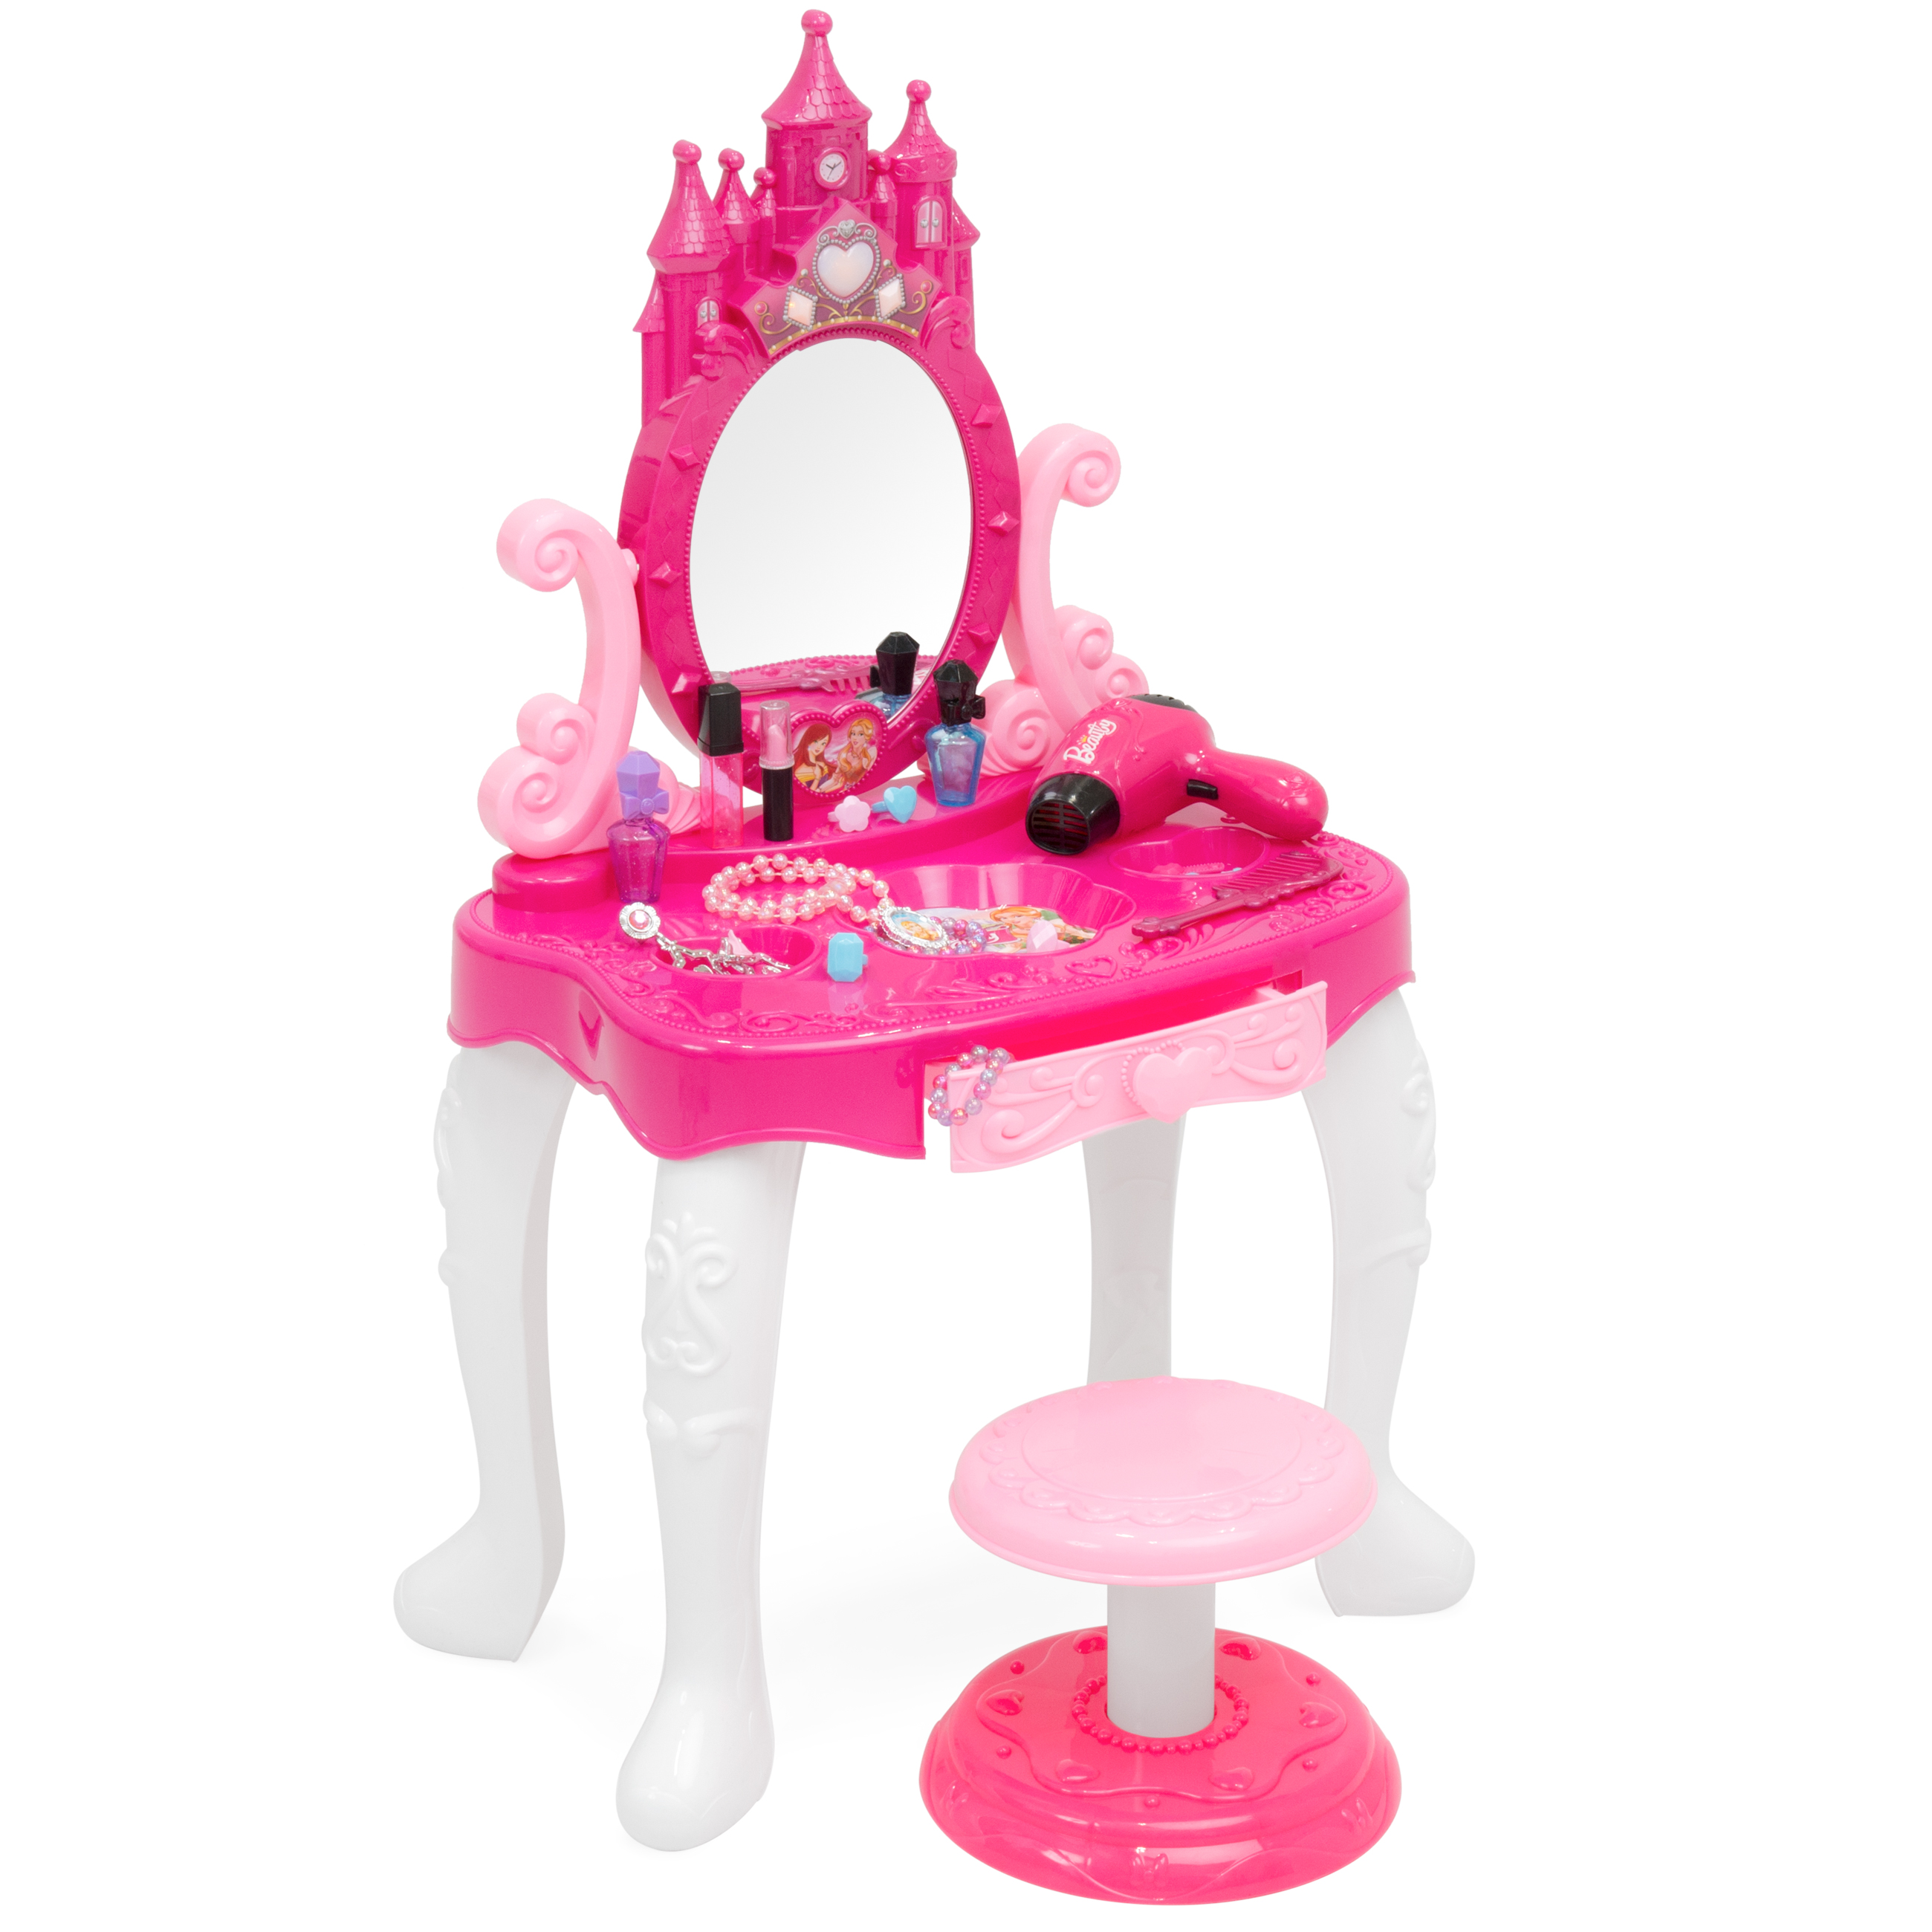 Best Choice Products 14-Piece Pretend Play Kids Vanity Table and Chair Beauty Play Set with Fashion & Makeup Accessories